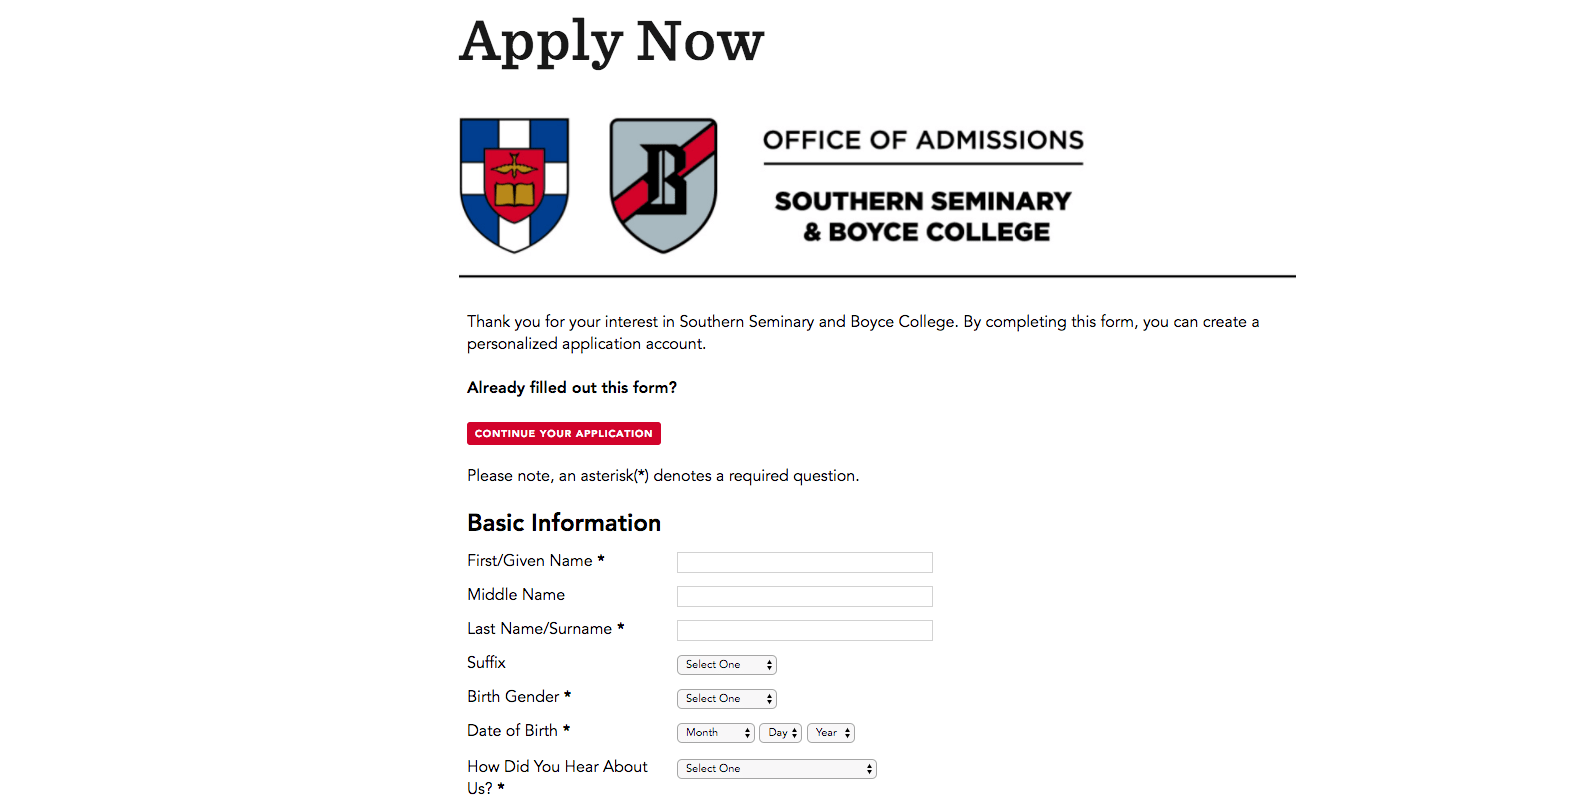 Sbts Has Odd Gender Selection Question On Admissions